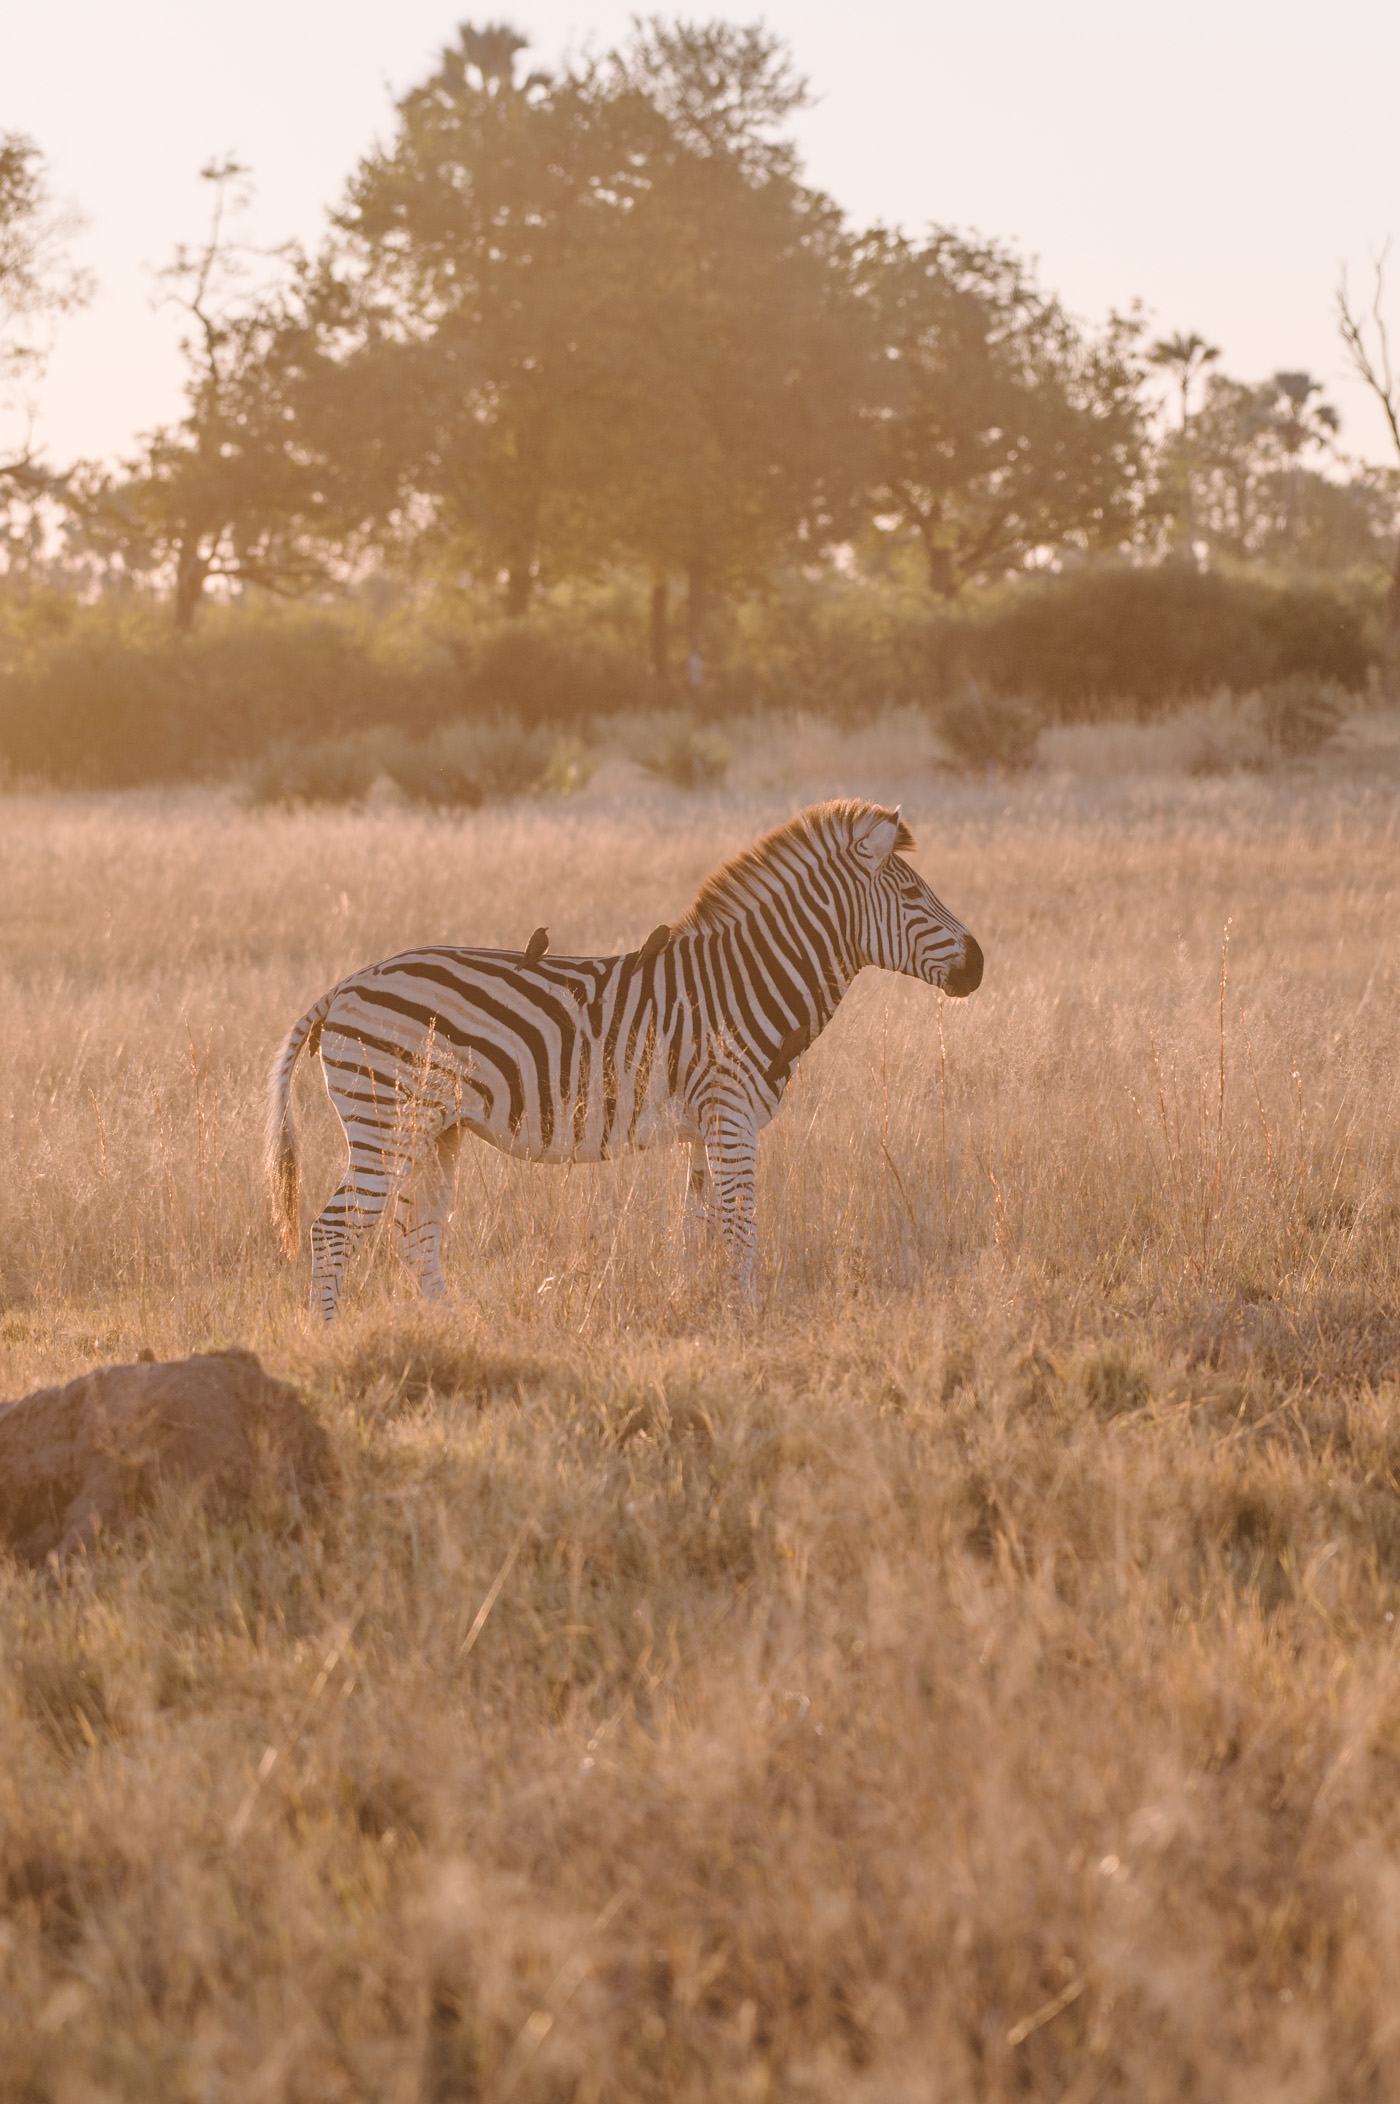 Zebra in the Okavango Delta in Botswana